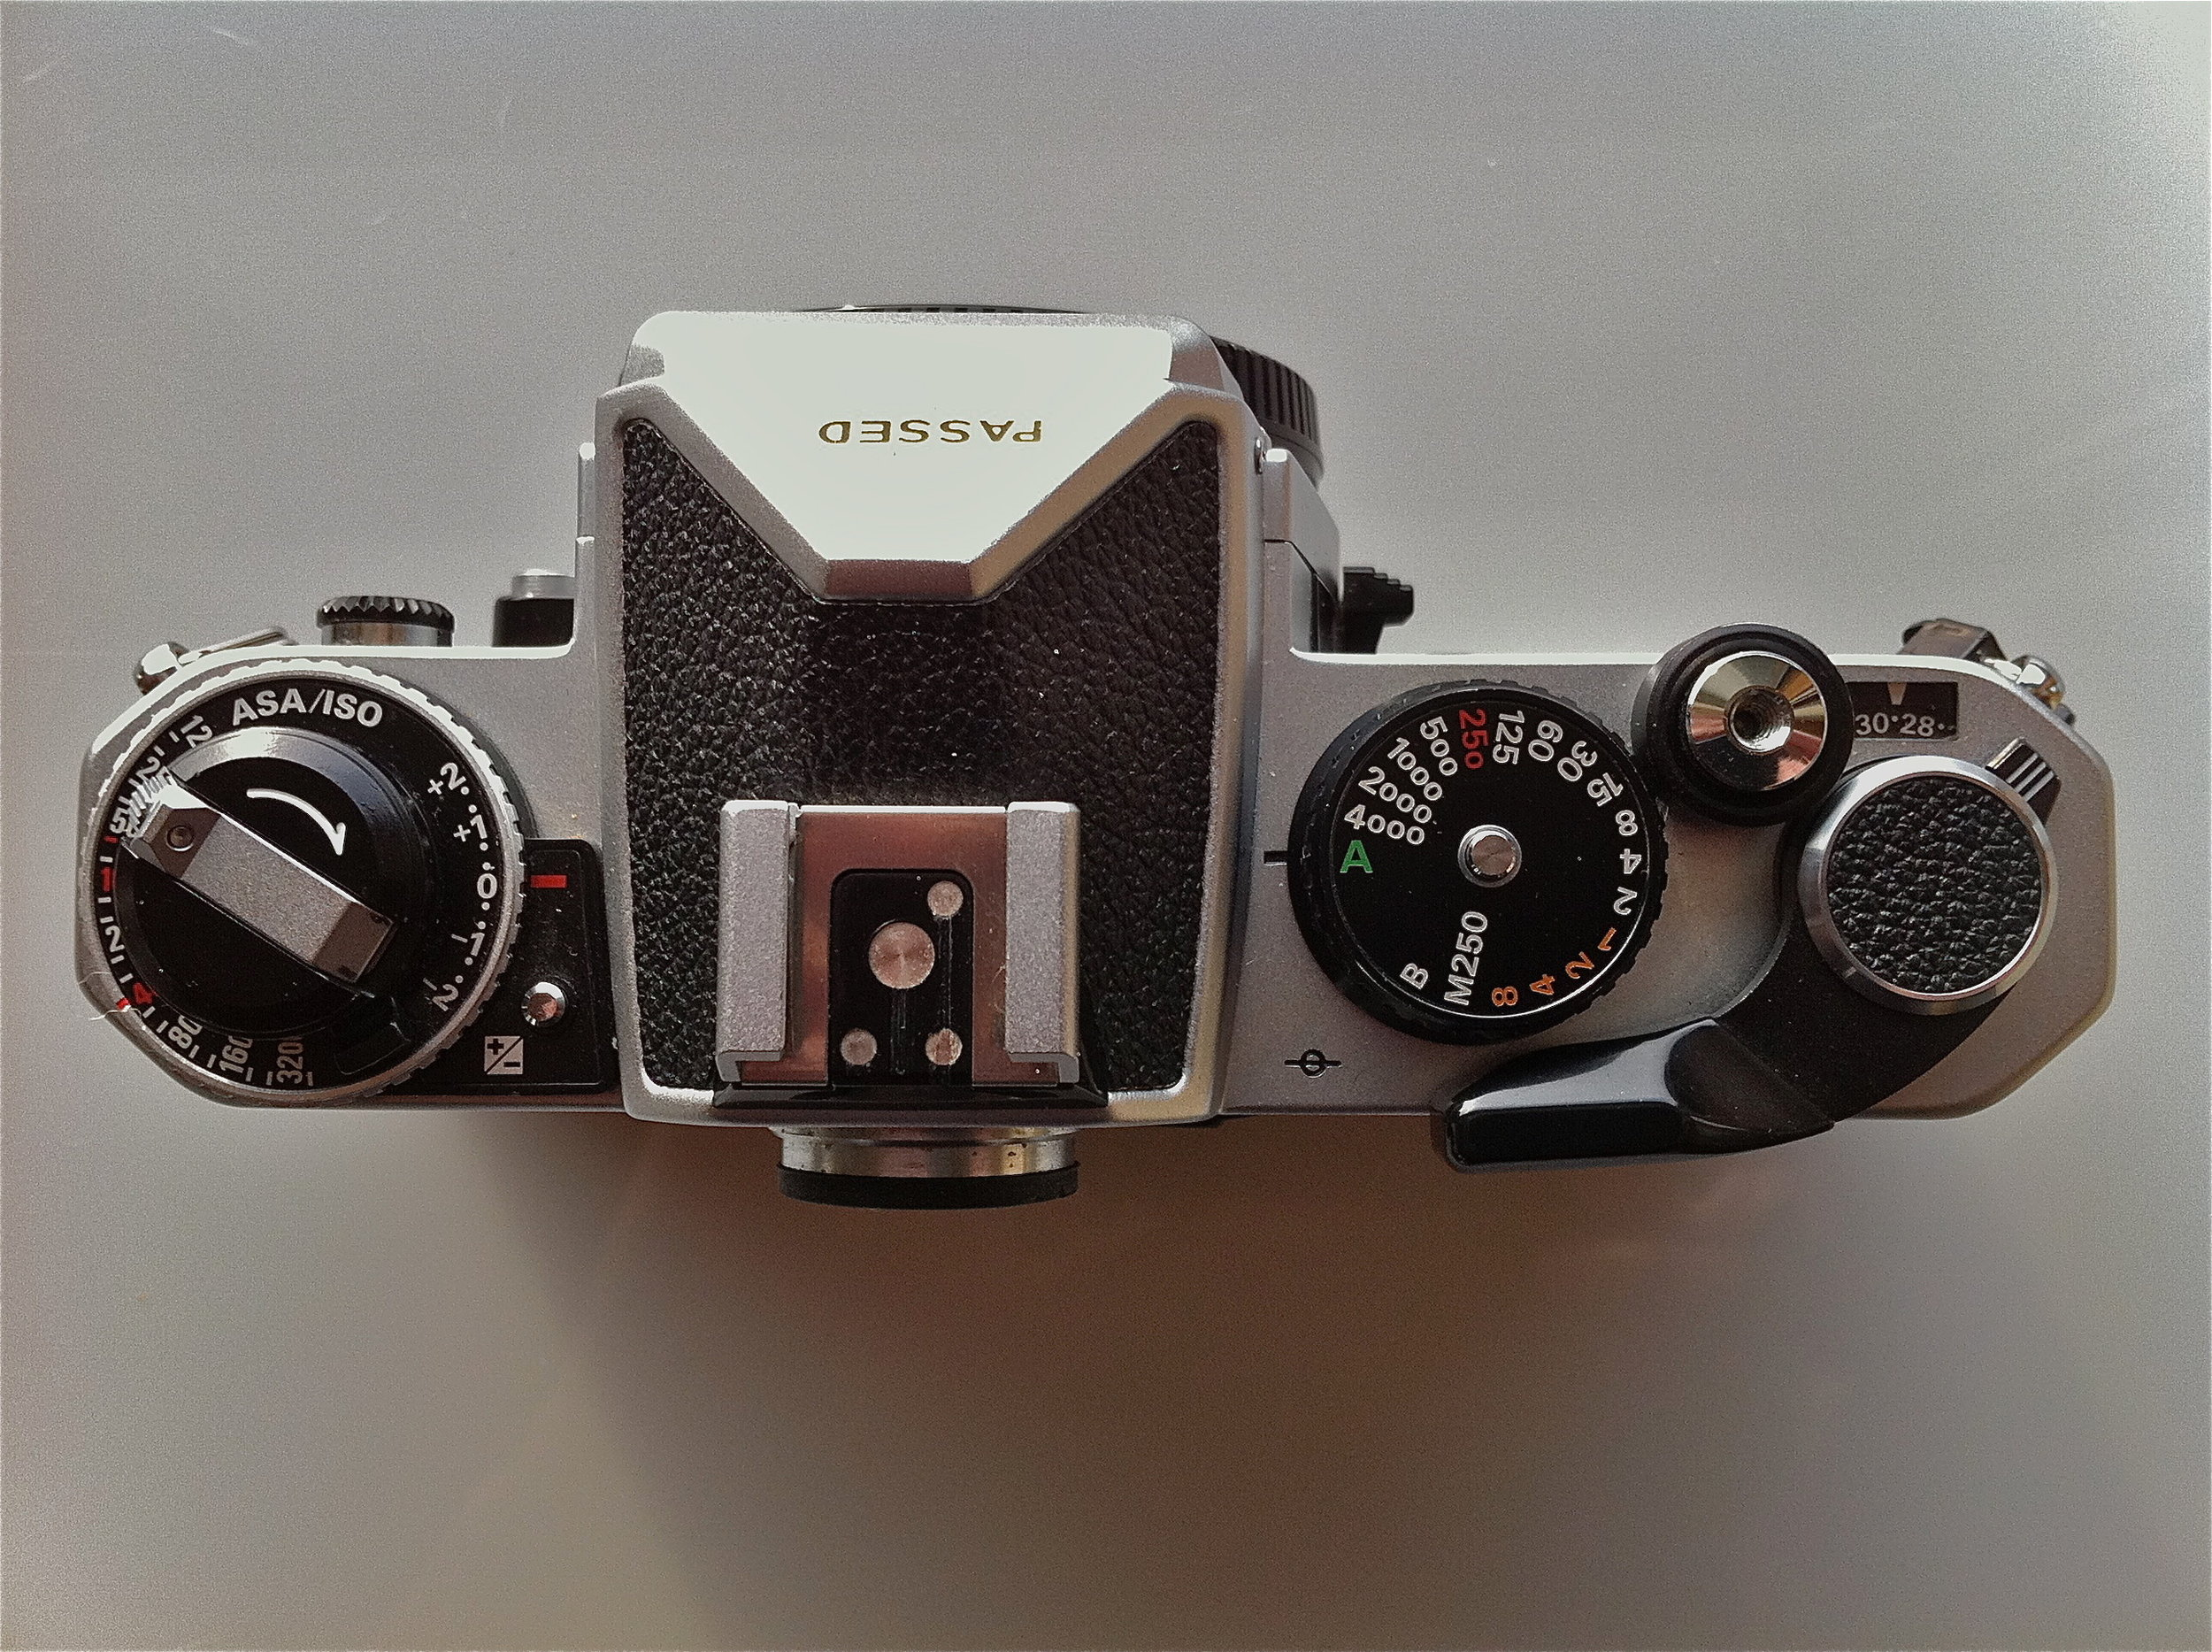 Nikon FE2 top controls. Sweet and simple!